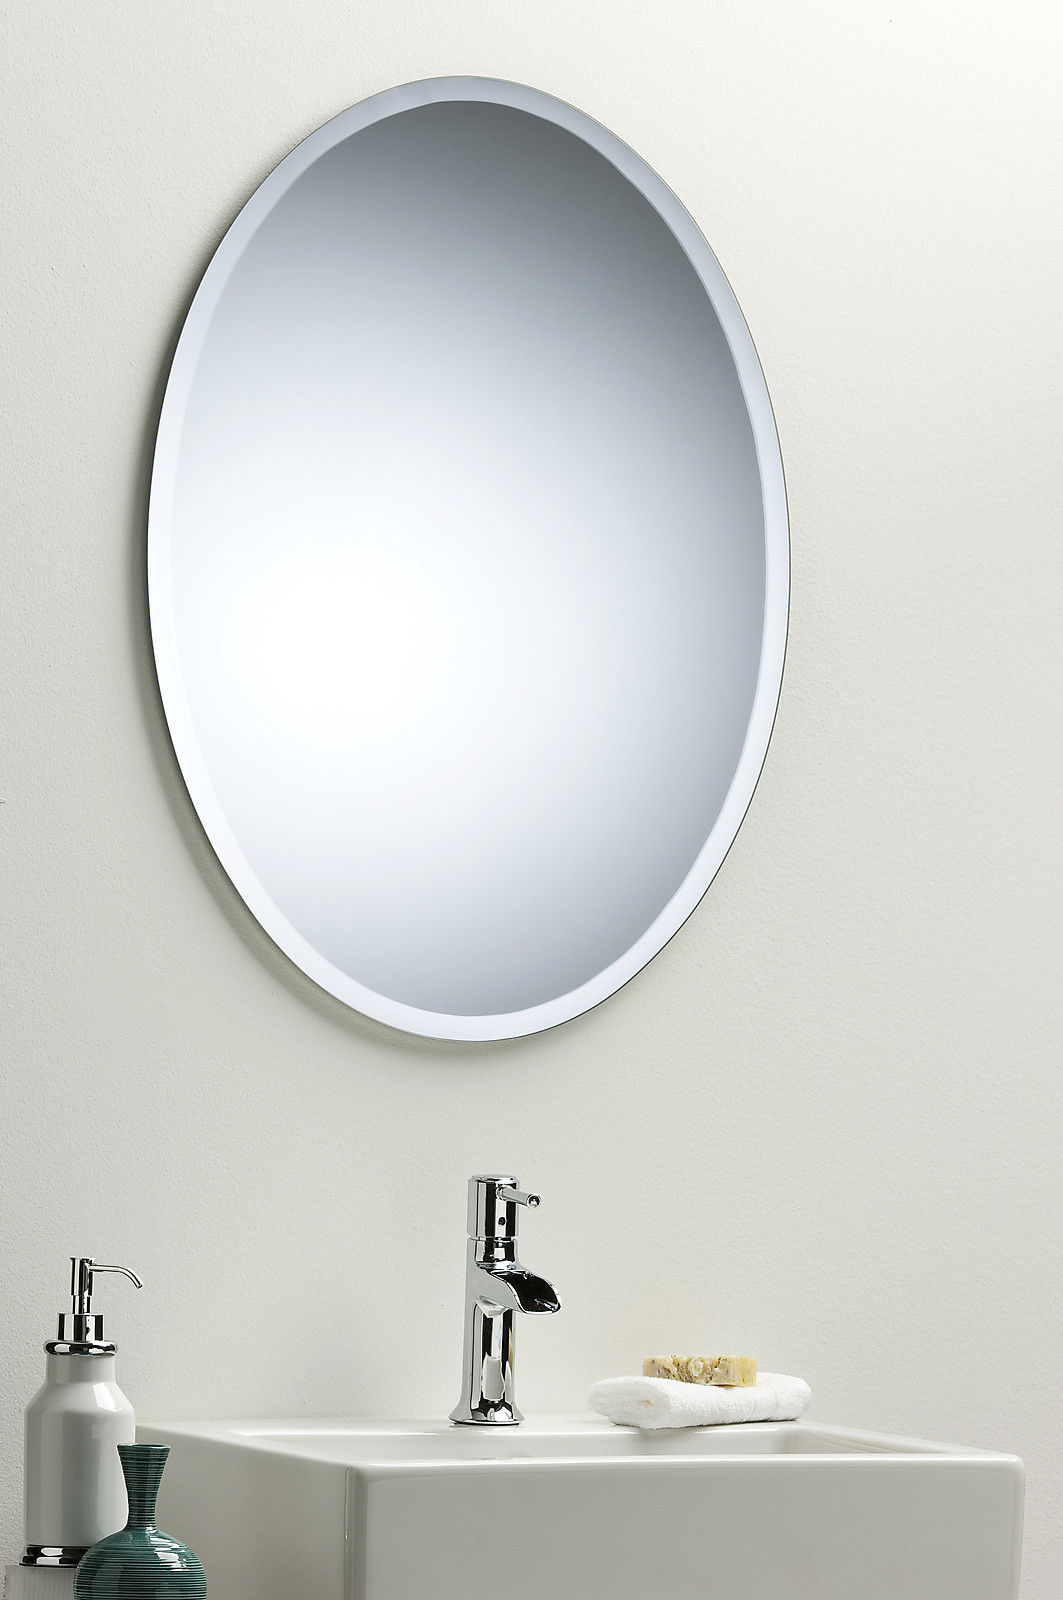 plain bathroom mirrors bathroom wall mirror modern stylish oval with bevel 13994